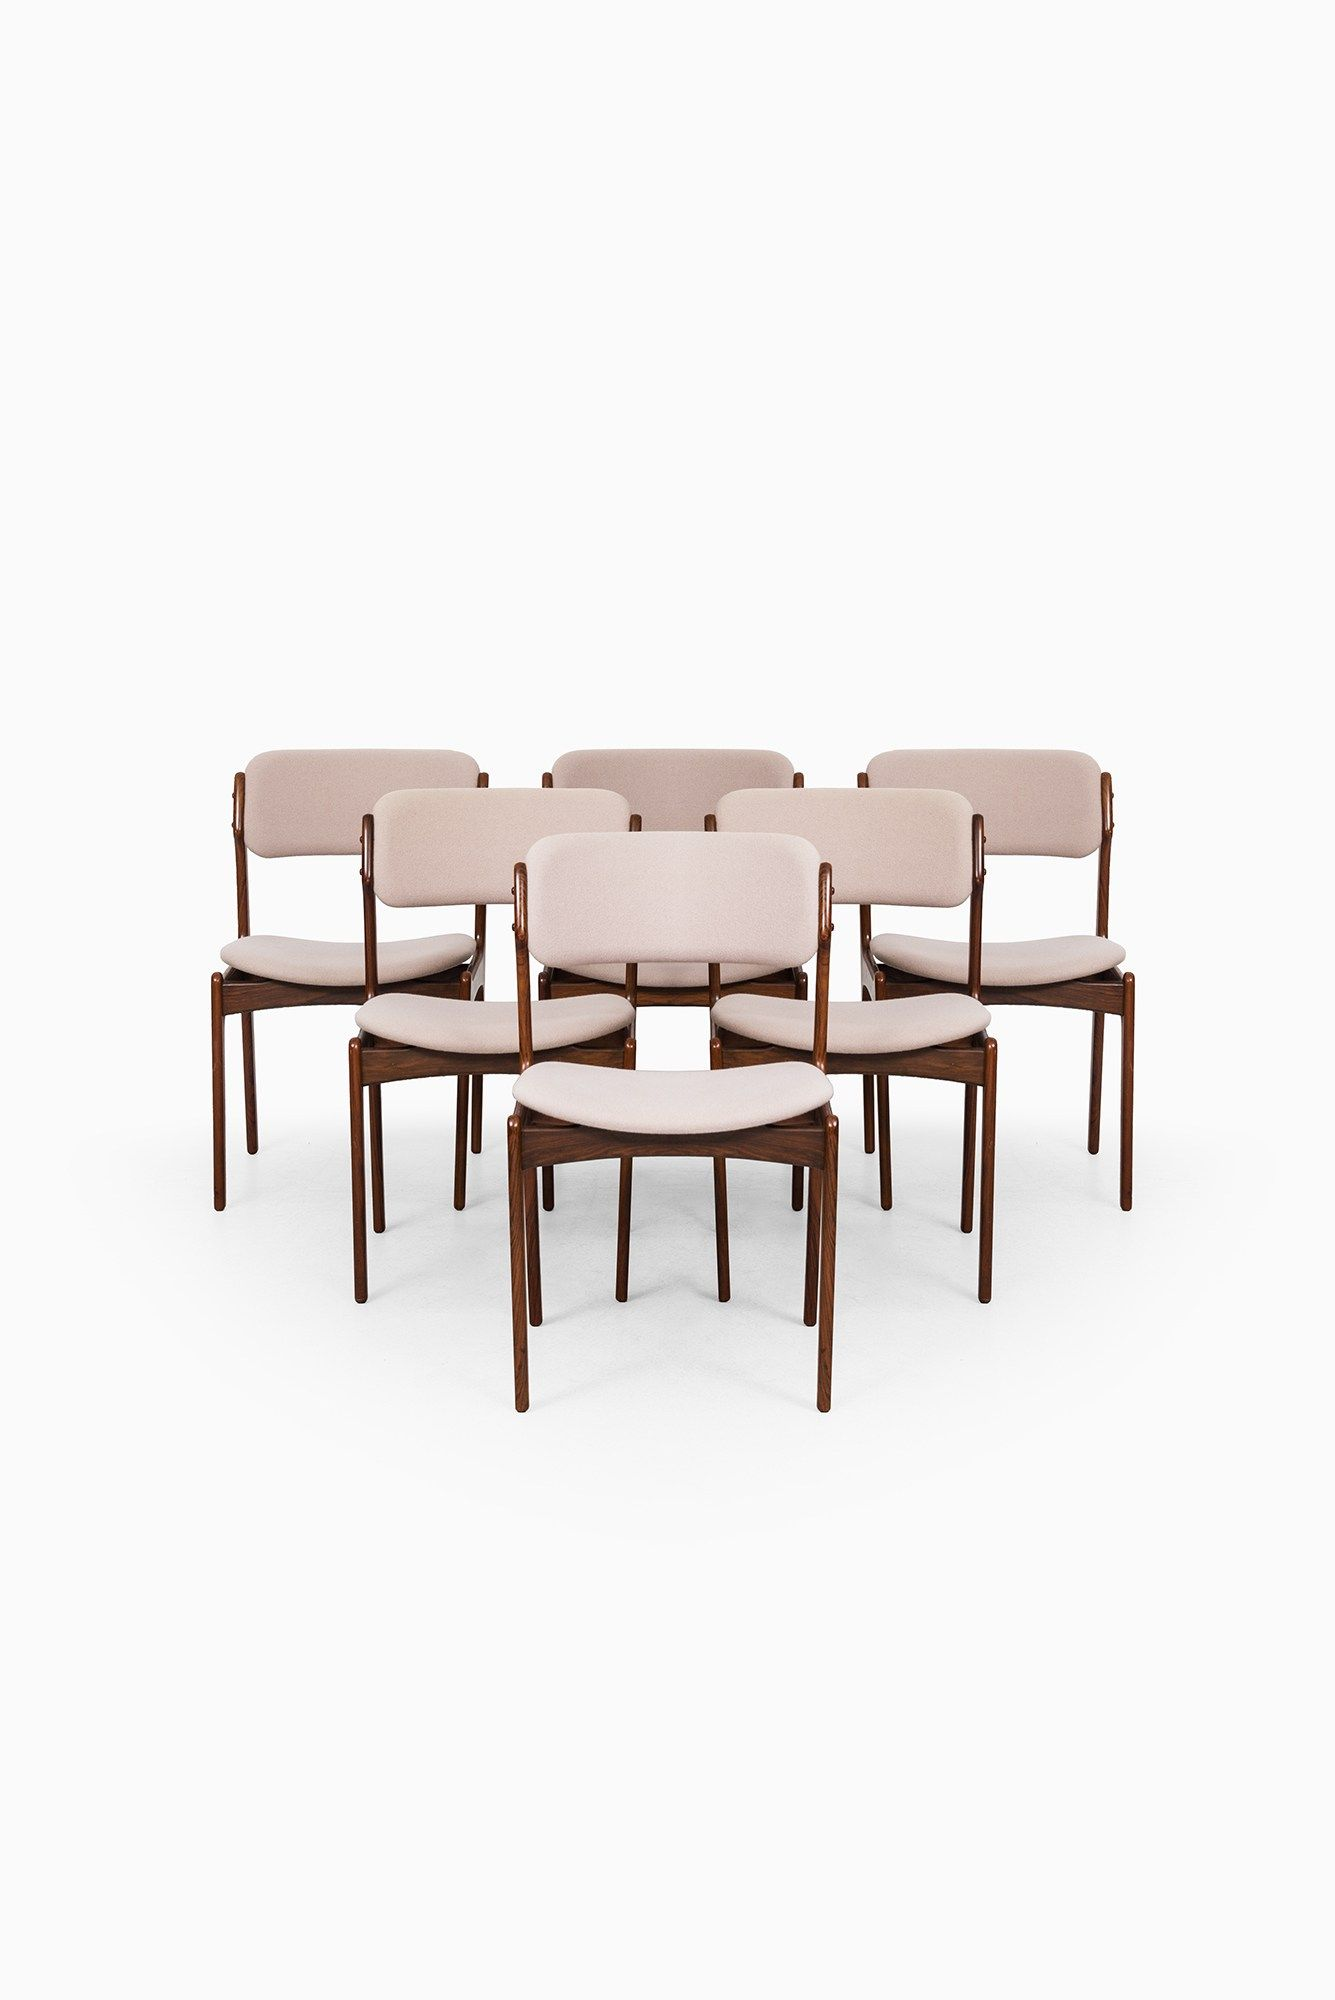 SOLD | Studio Schalling | Dining chairs, Chair, Furniture